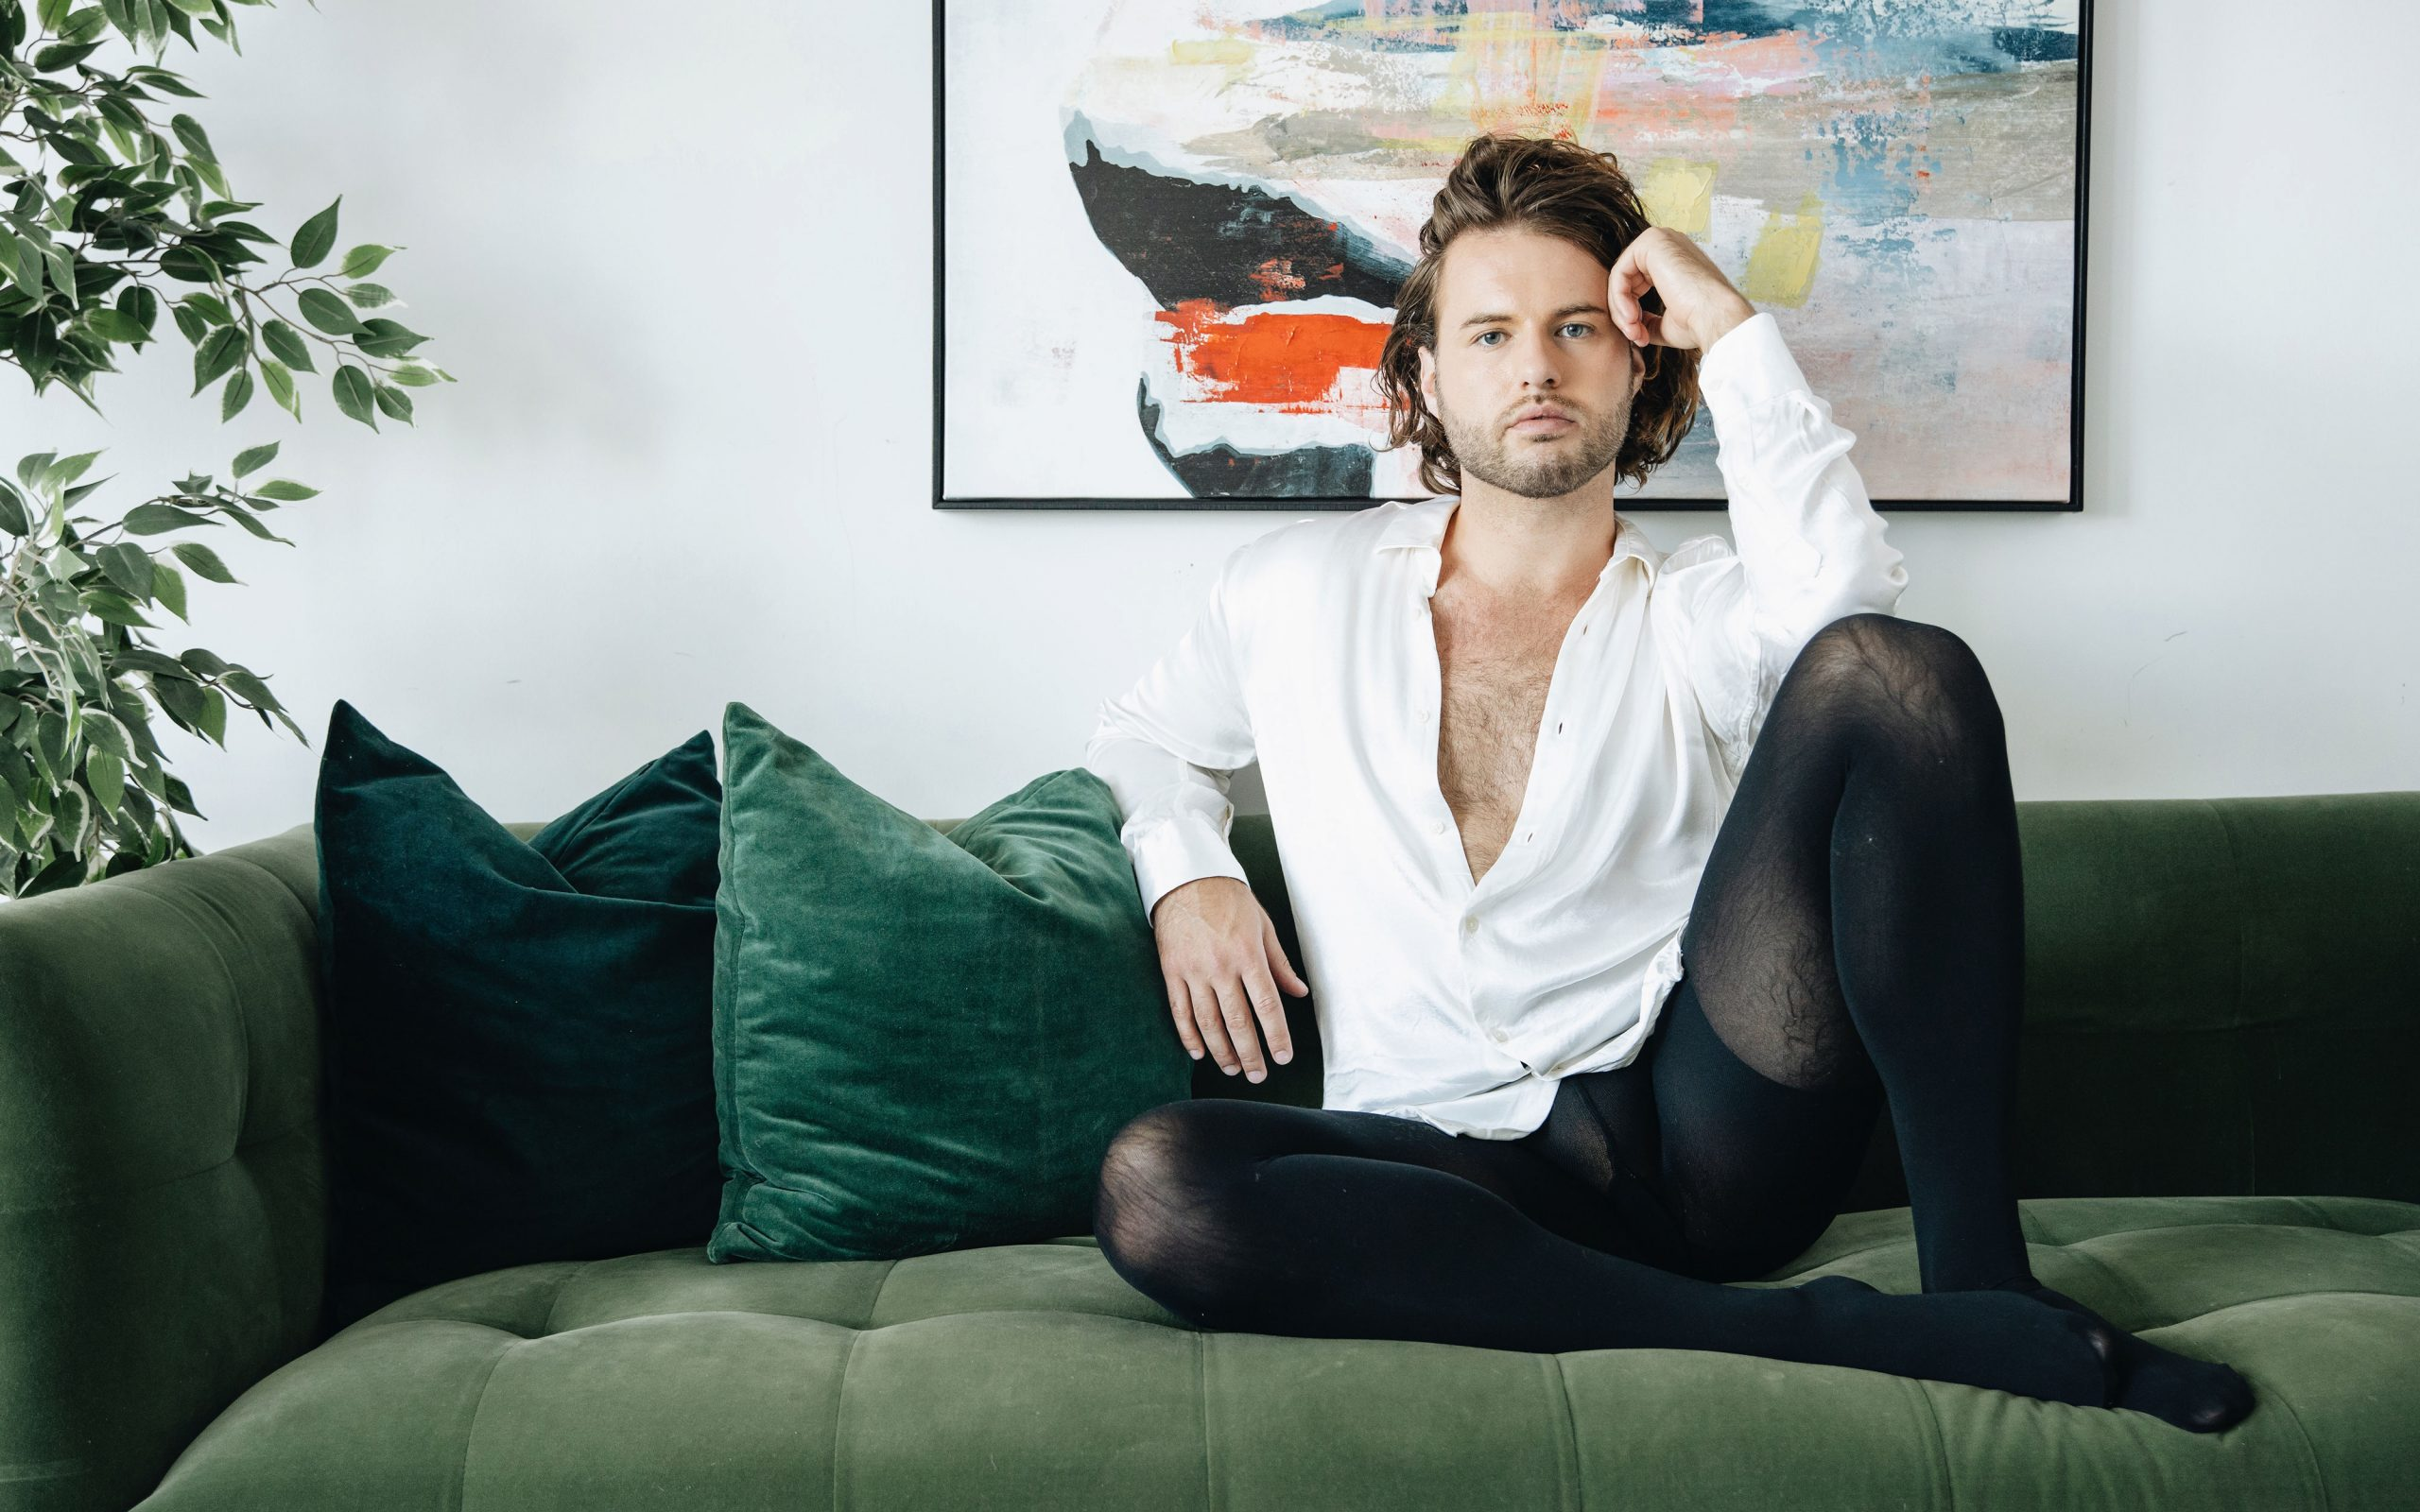 Men in tights: Is this the future of gender-fluid fashion?